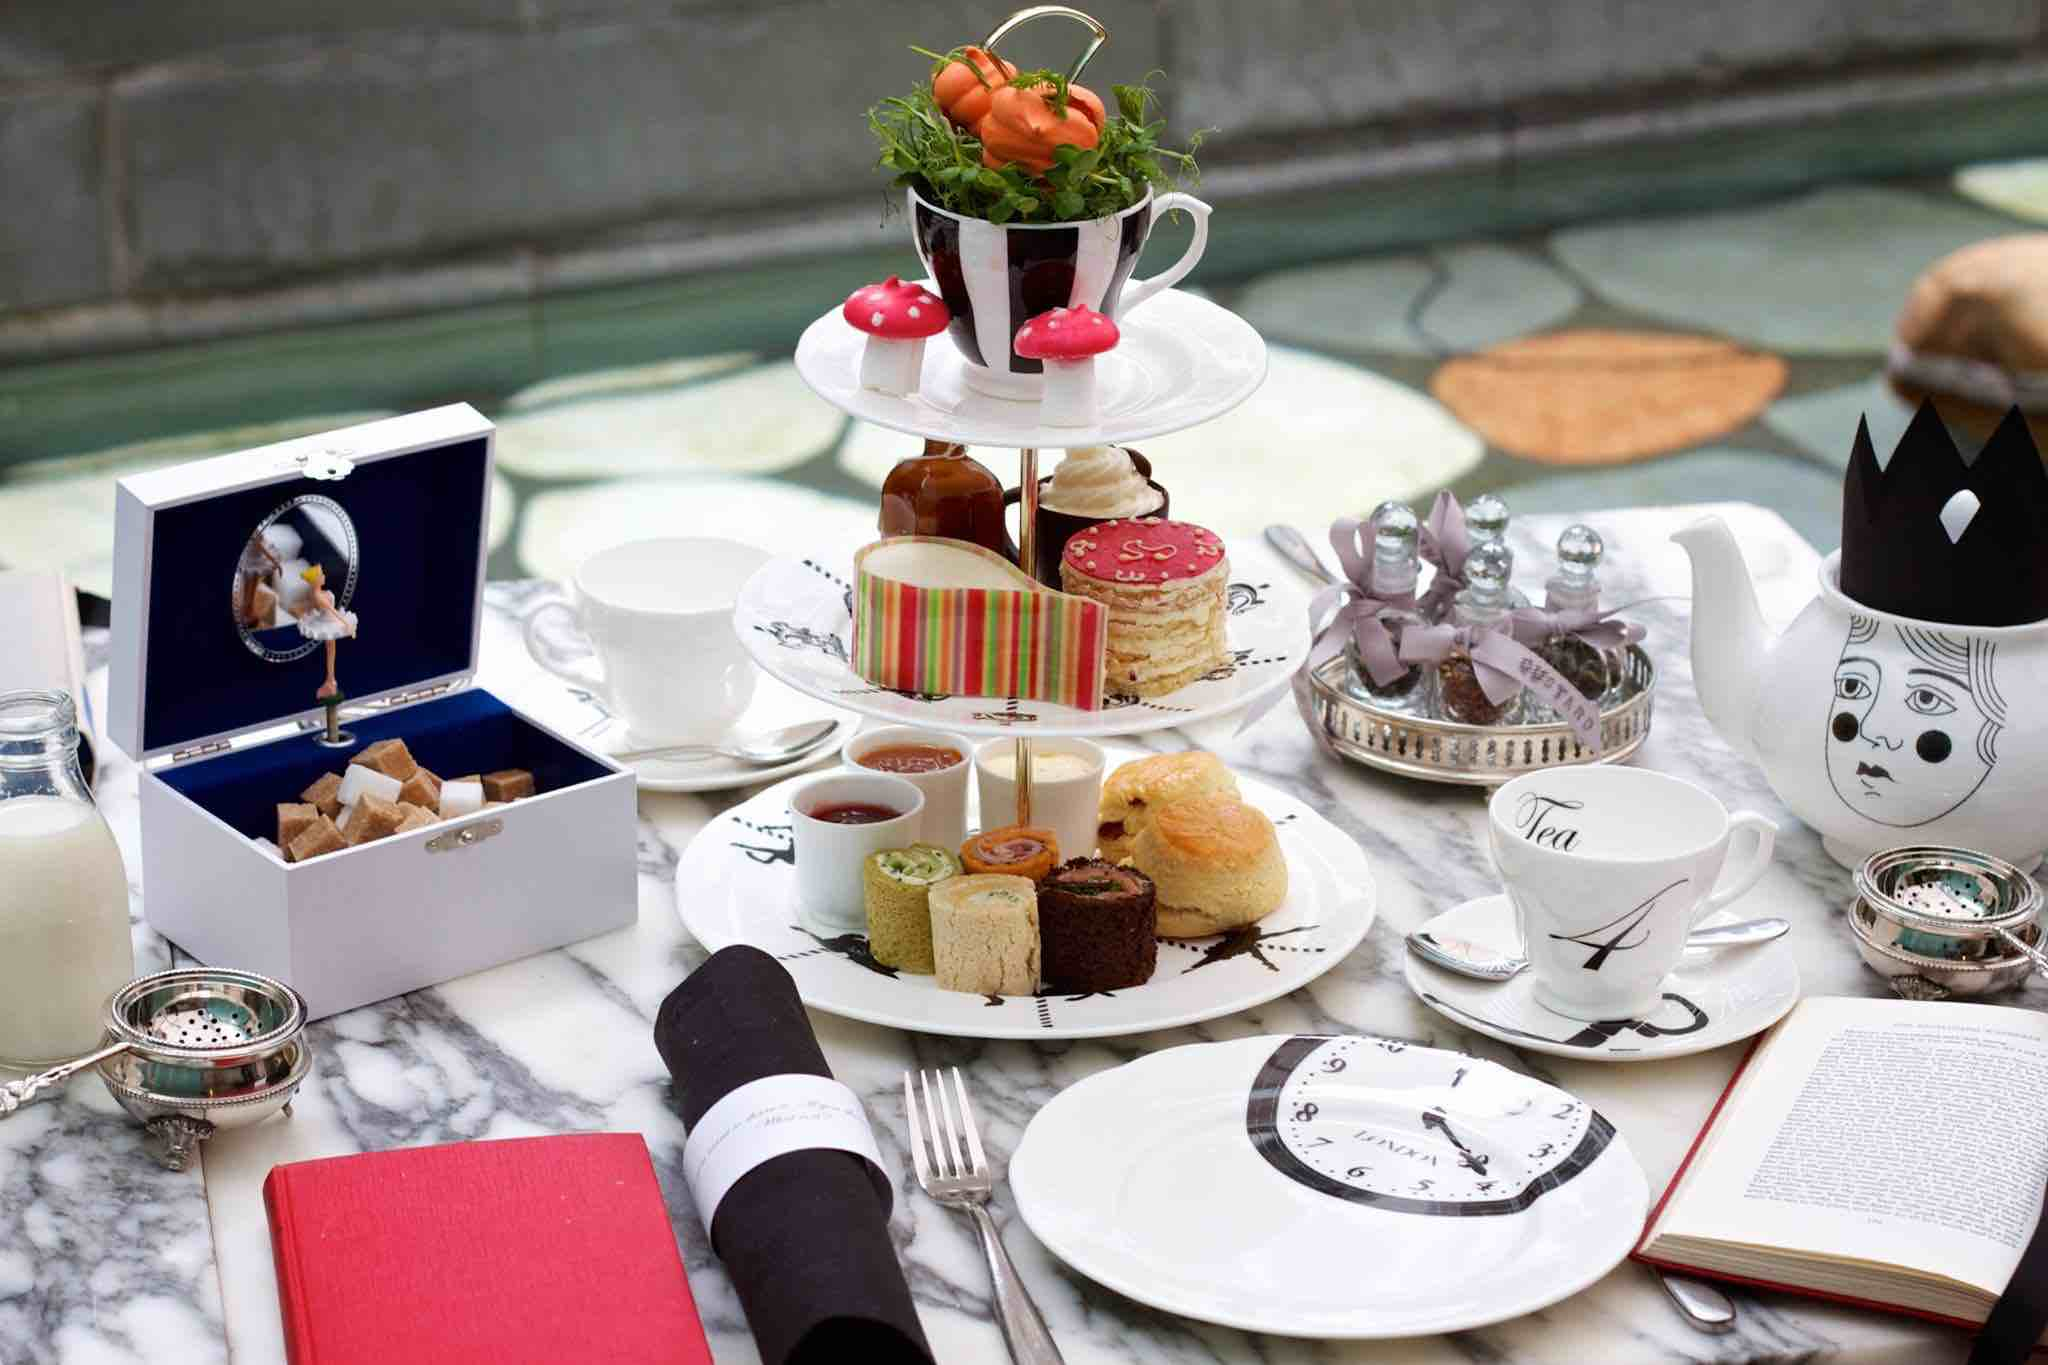 3/Mad Hatters Afternoon Tea at The Sanderson